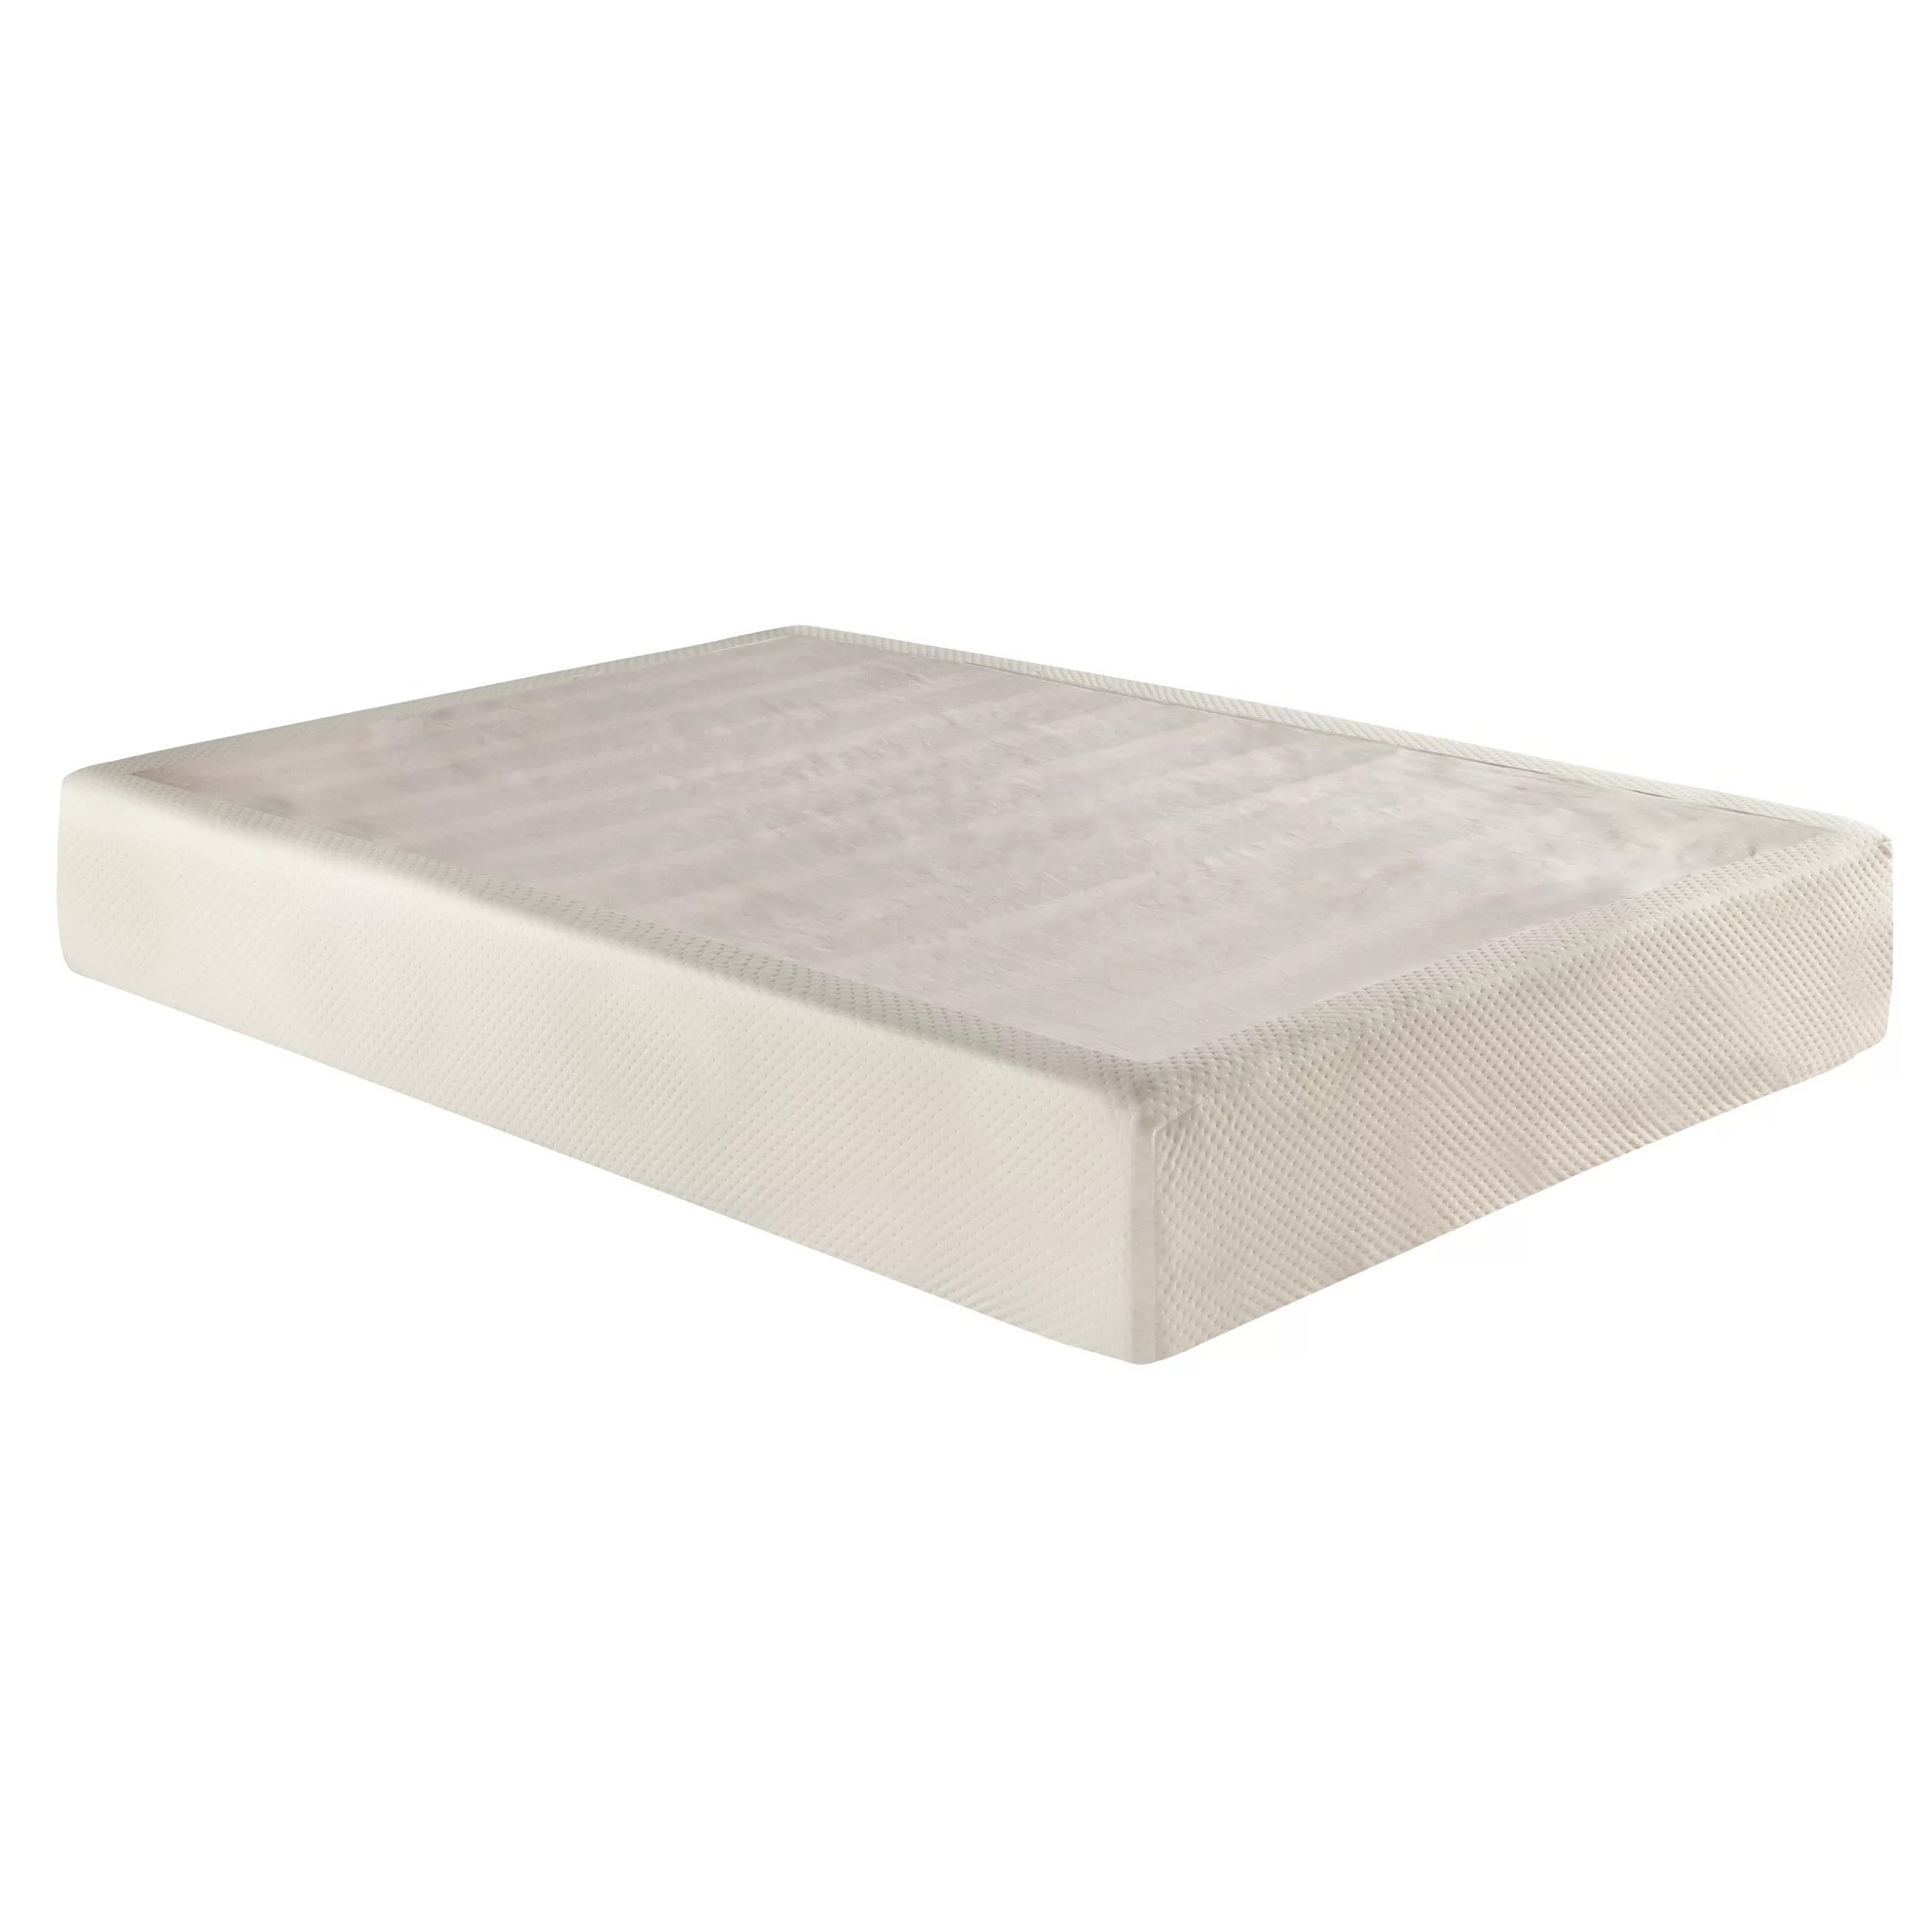 Mattress Foundation Alcott Hill Bratton Heights King Woven Mattress Foundation